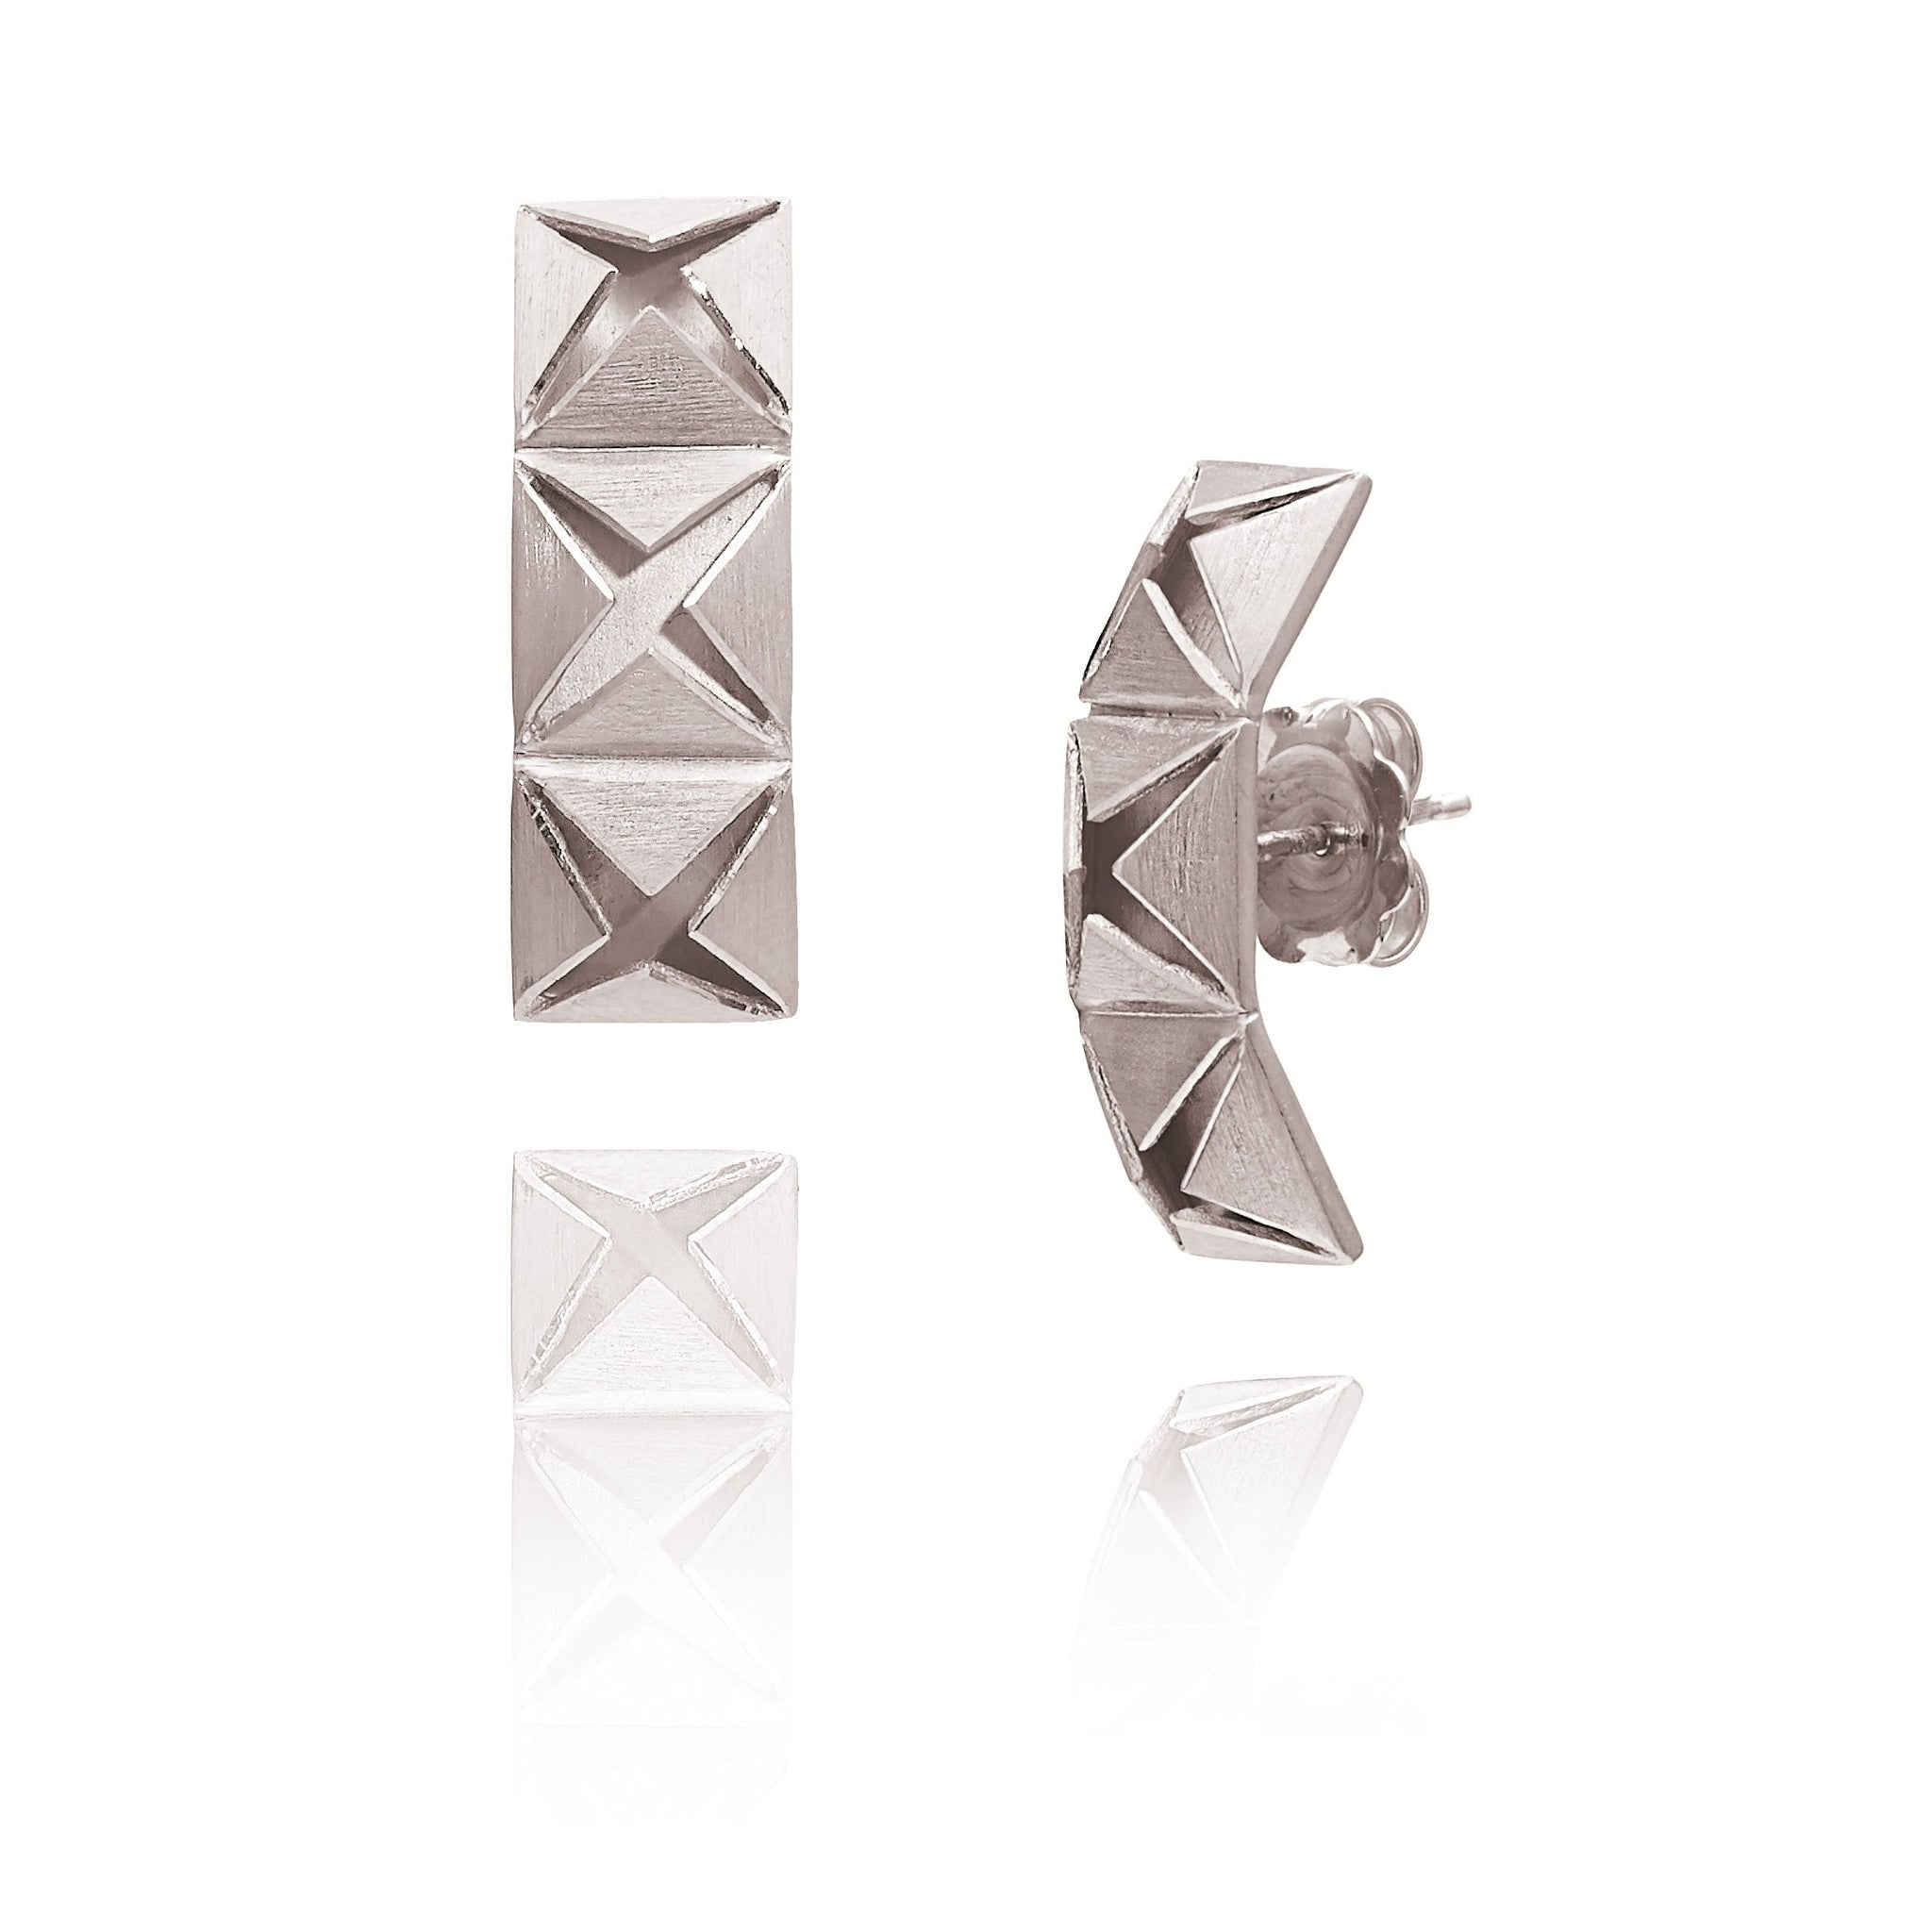 Origami Star Earrings - Lesetta